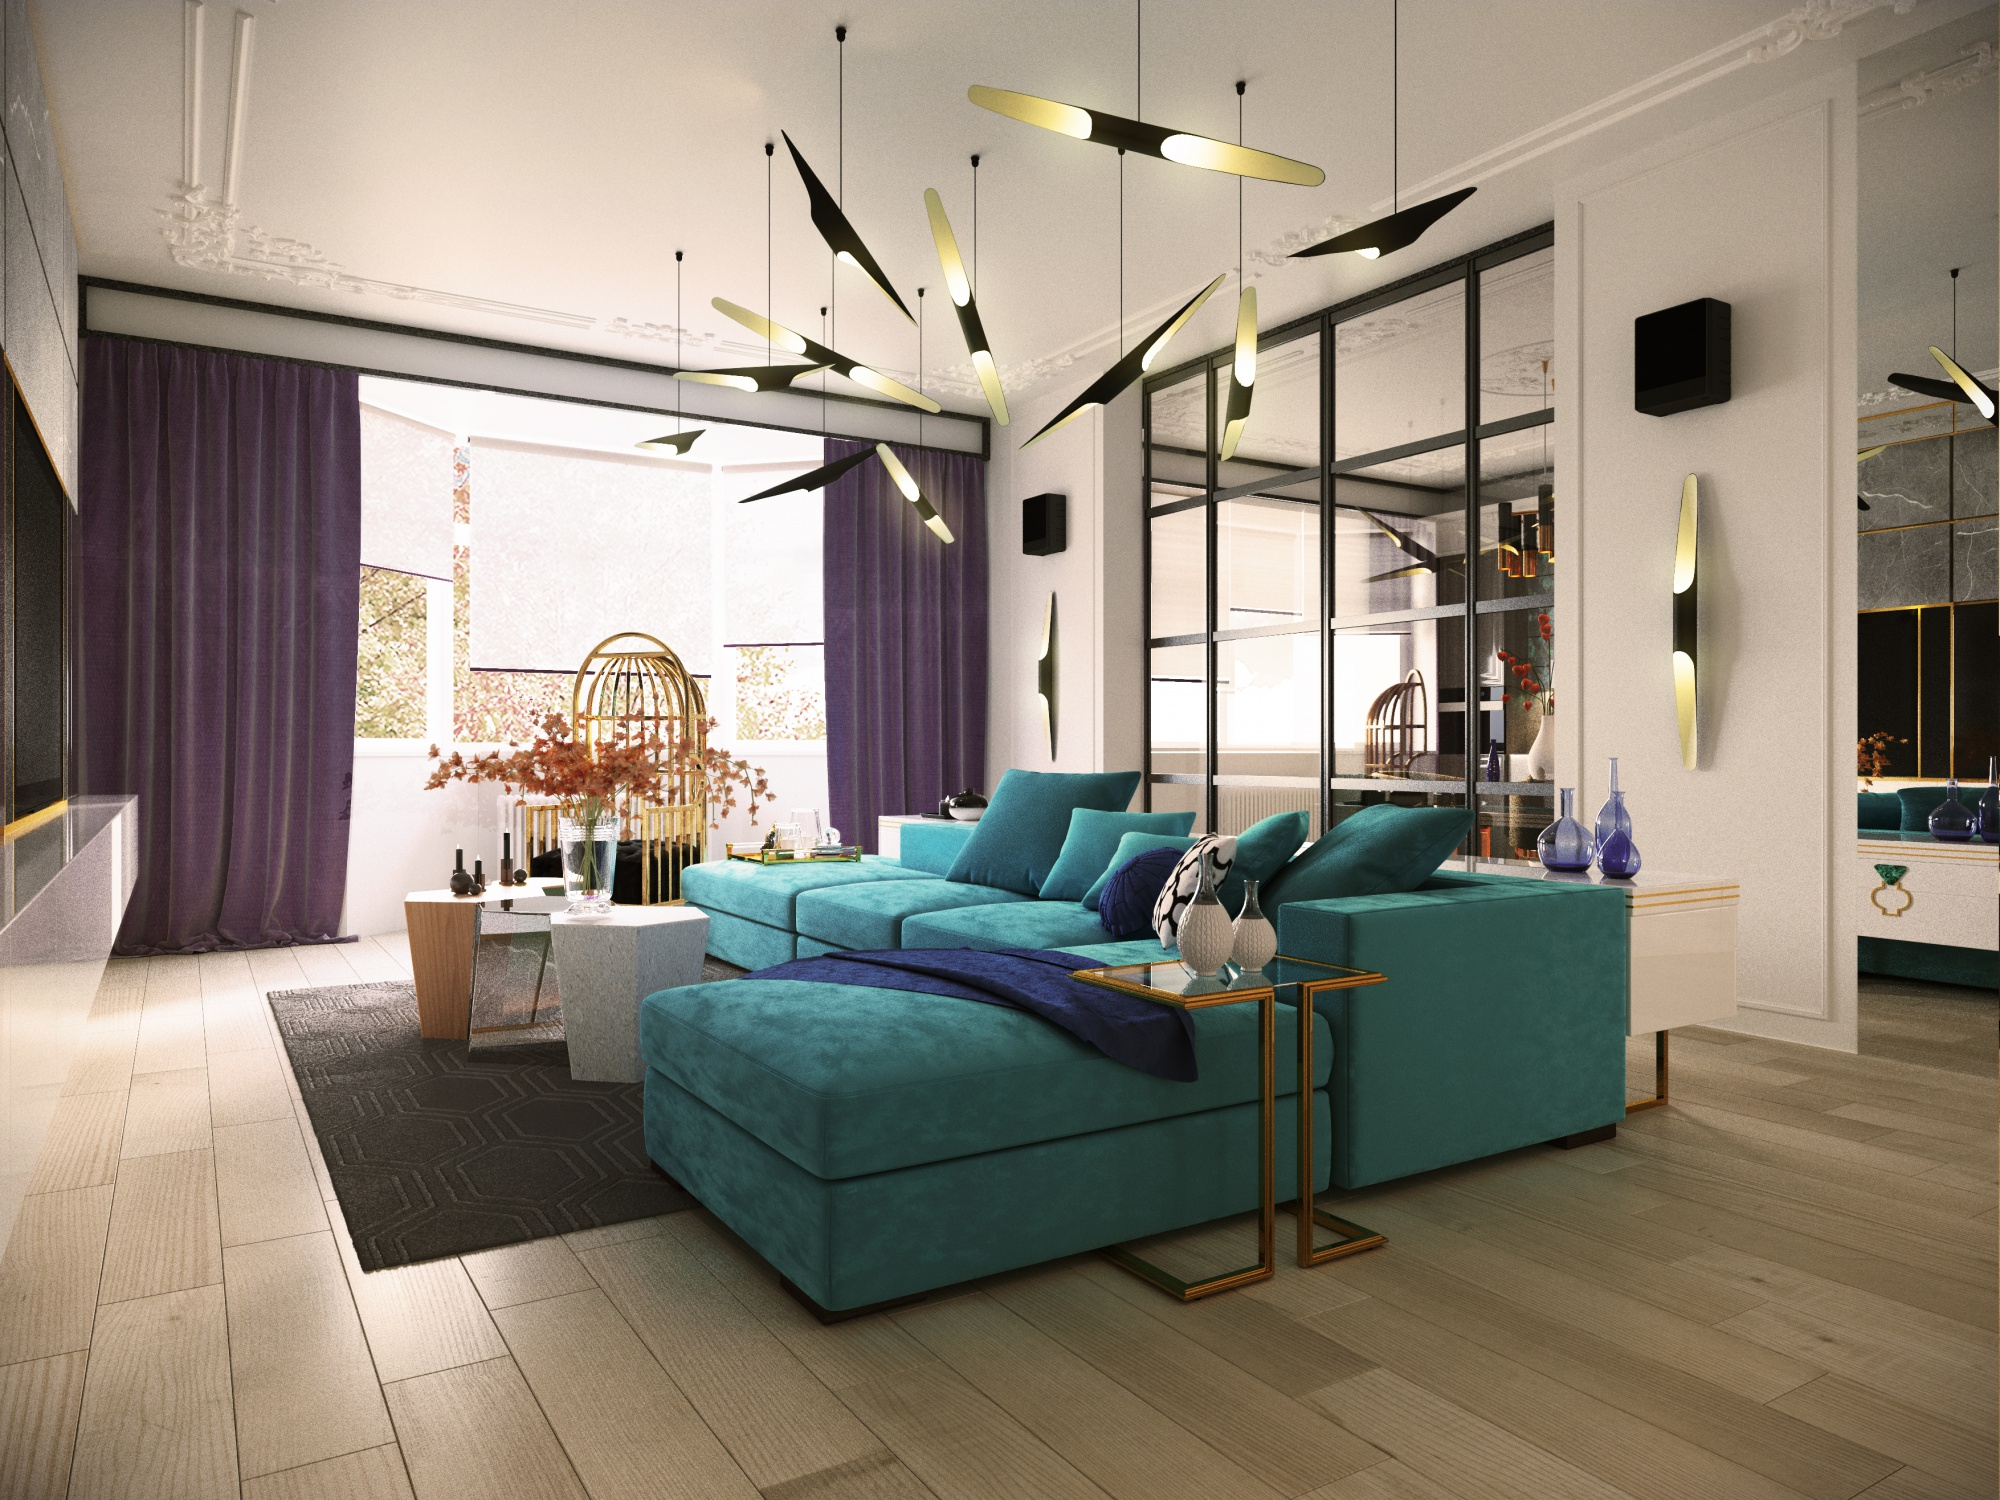 Charming Blue Apartment Design With Stunning Details